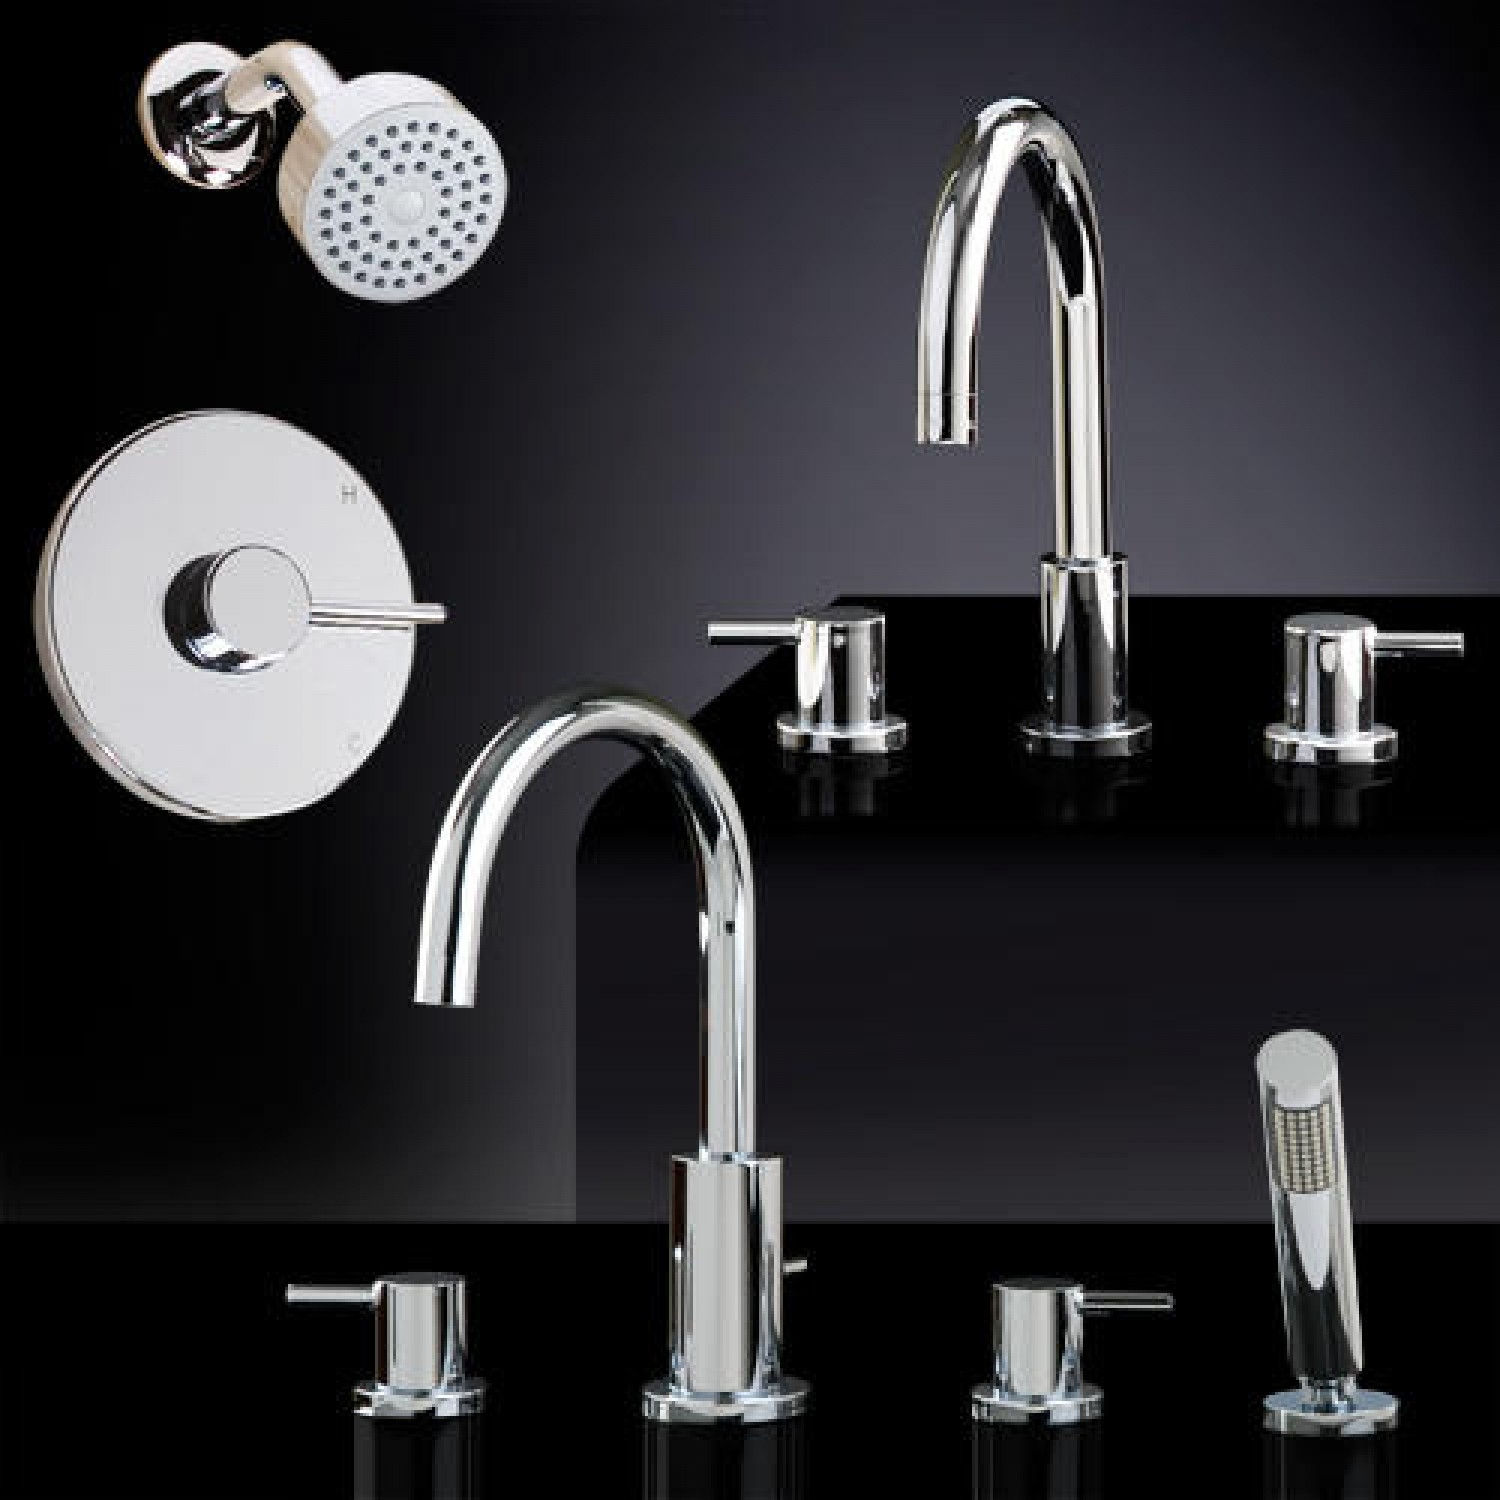 Ideas, rotunda tub shower set 1 with widespread sink faucet bathroom within size 1500 x 1500  .